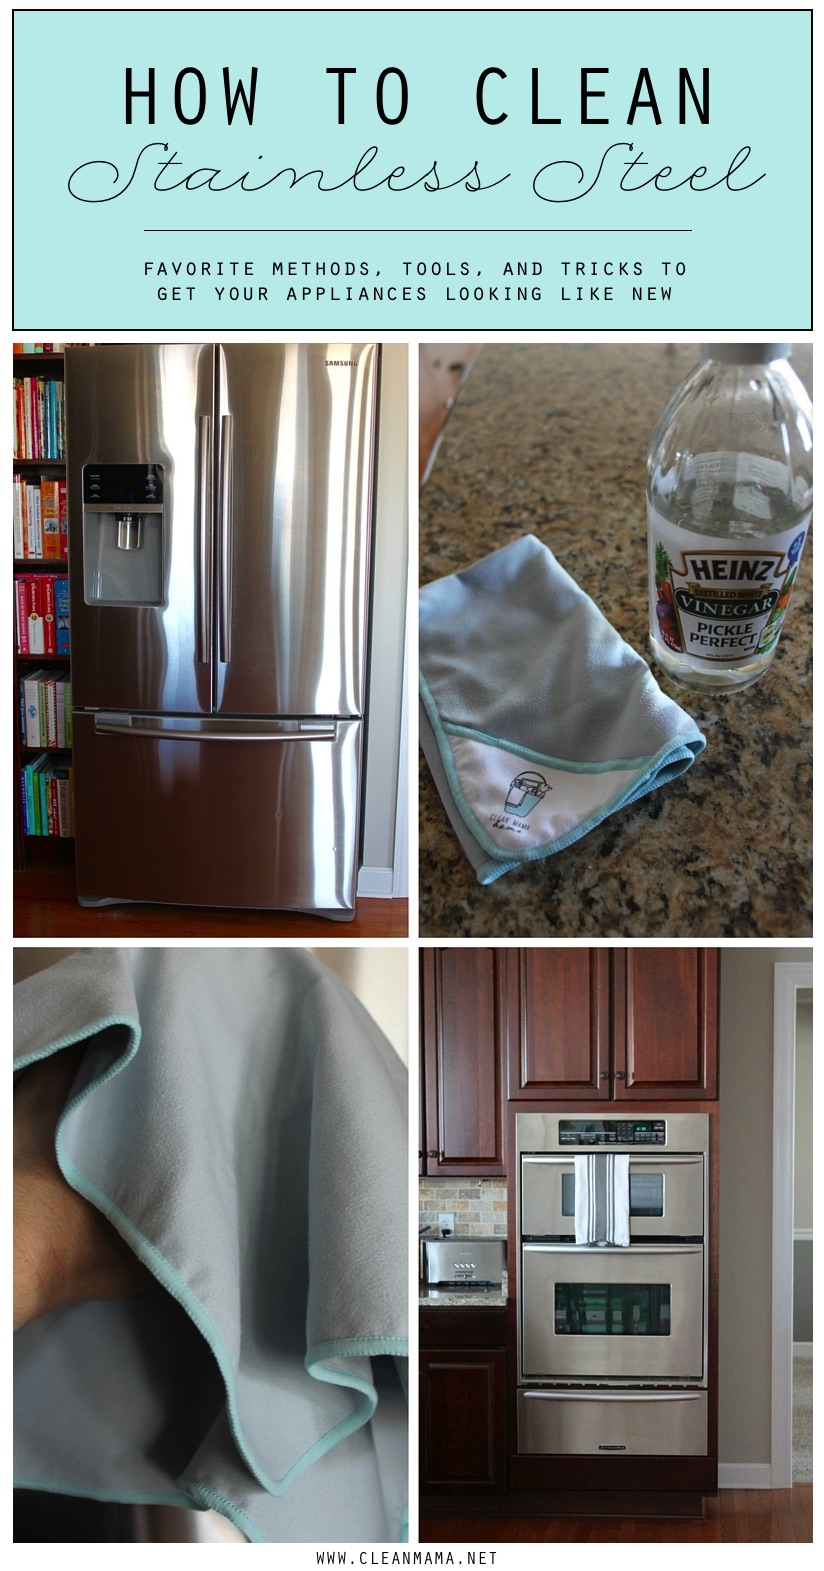 Cleaning Your Kitchen Appliances